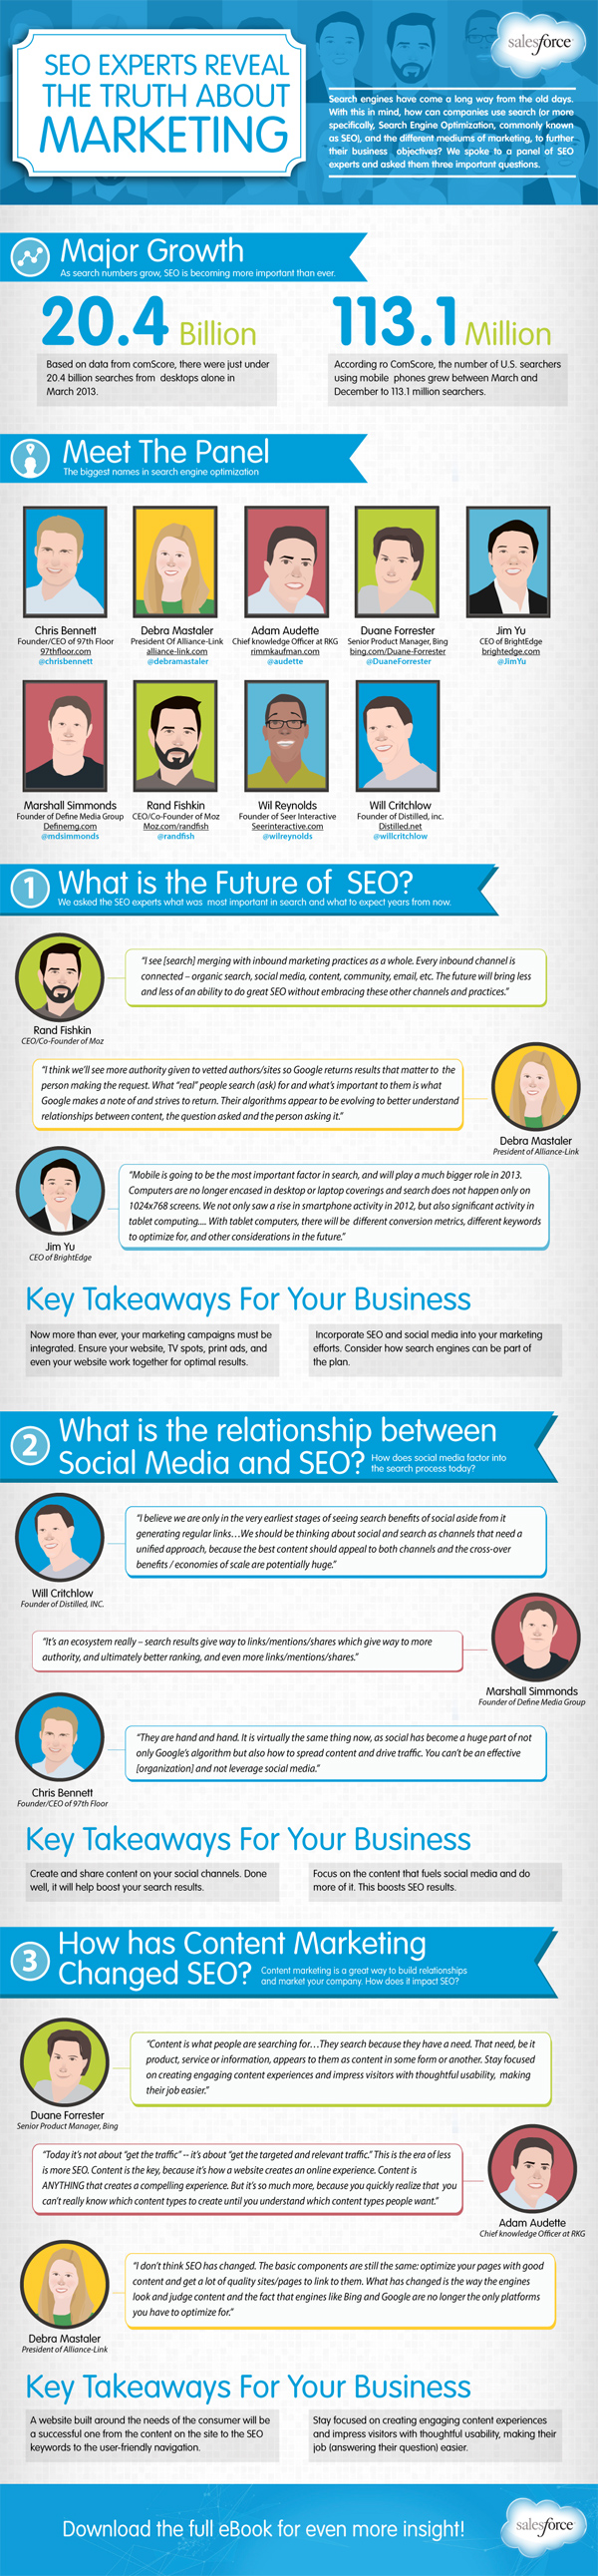 The Future of SEO-Infographic